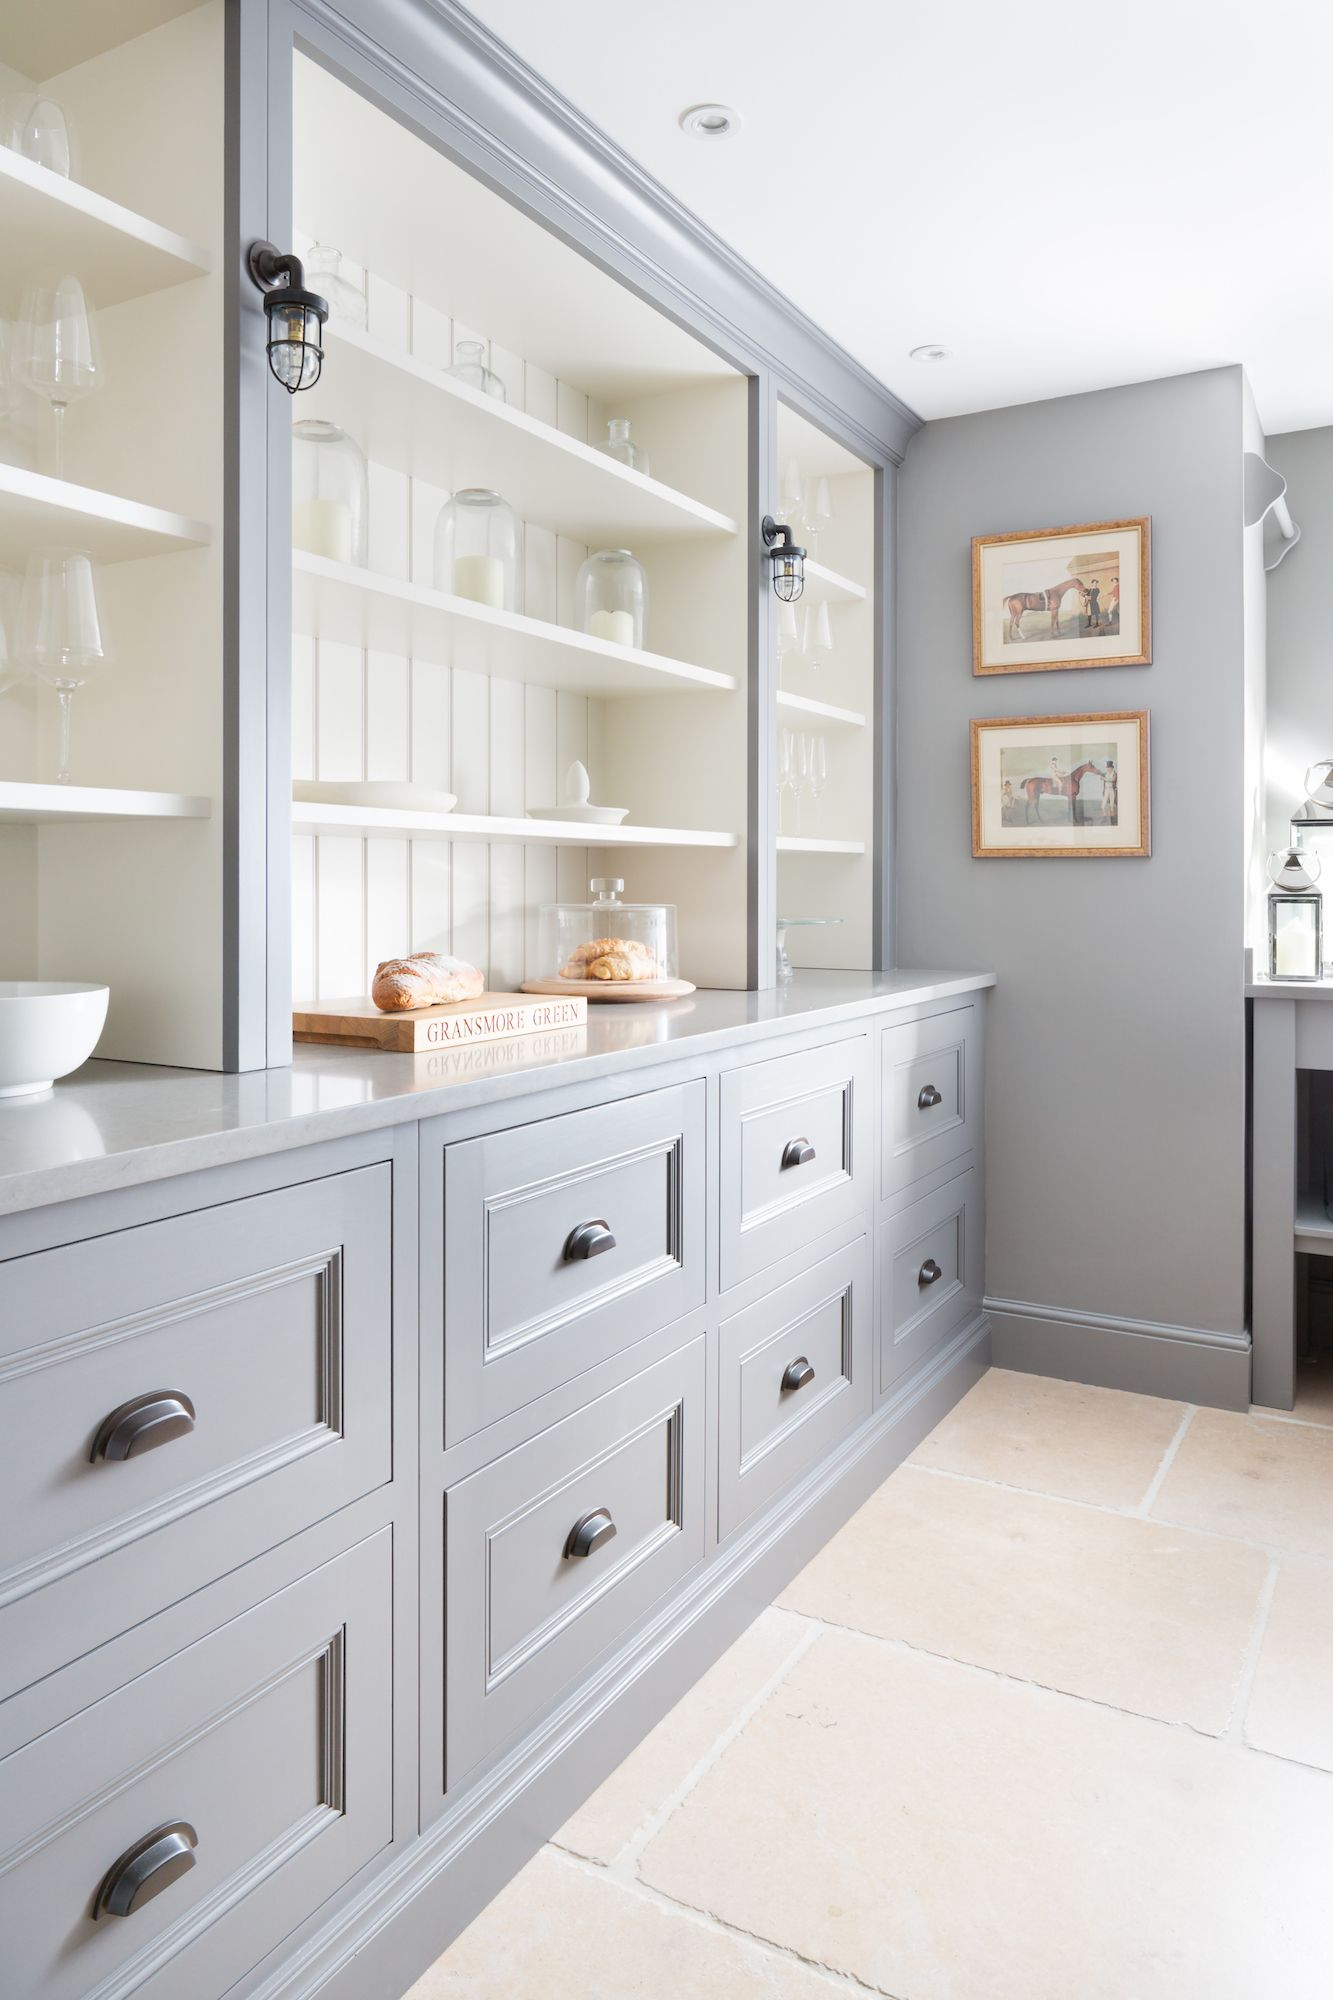 Kitchen Gray Grey Cabinets With Open Shelving Painted